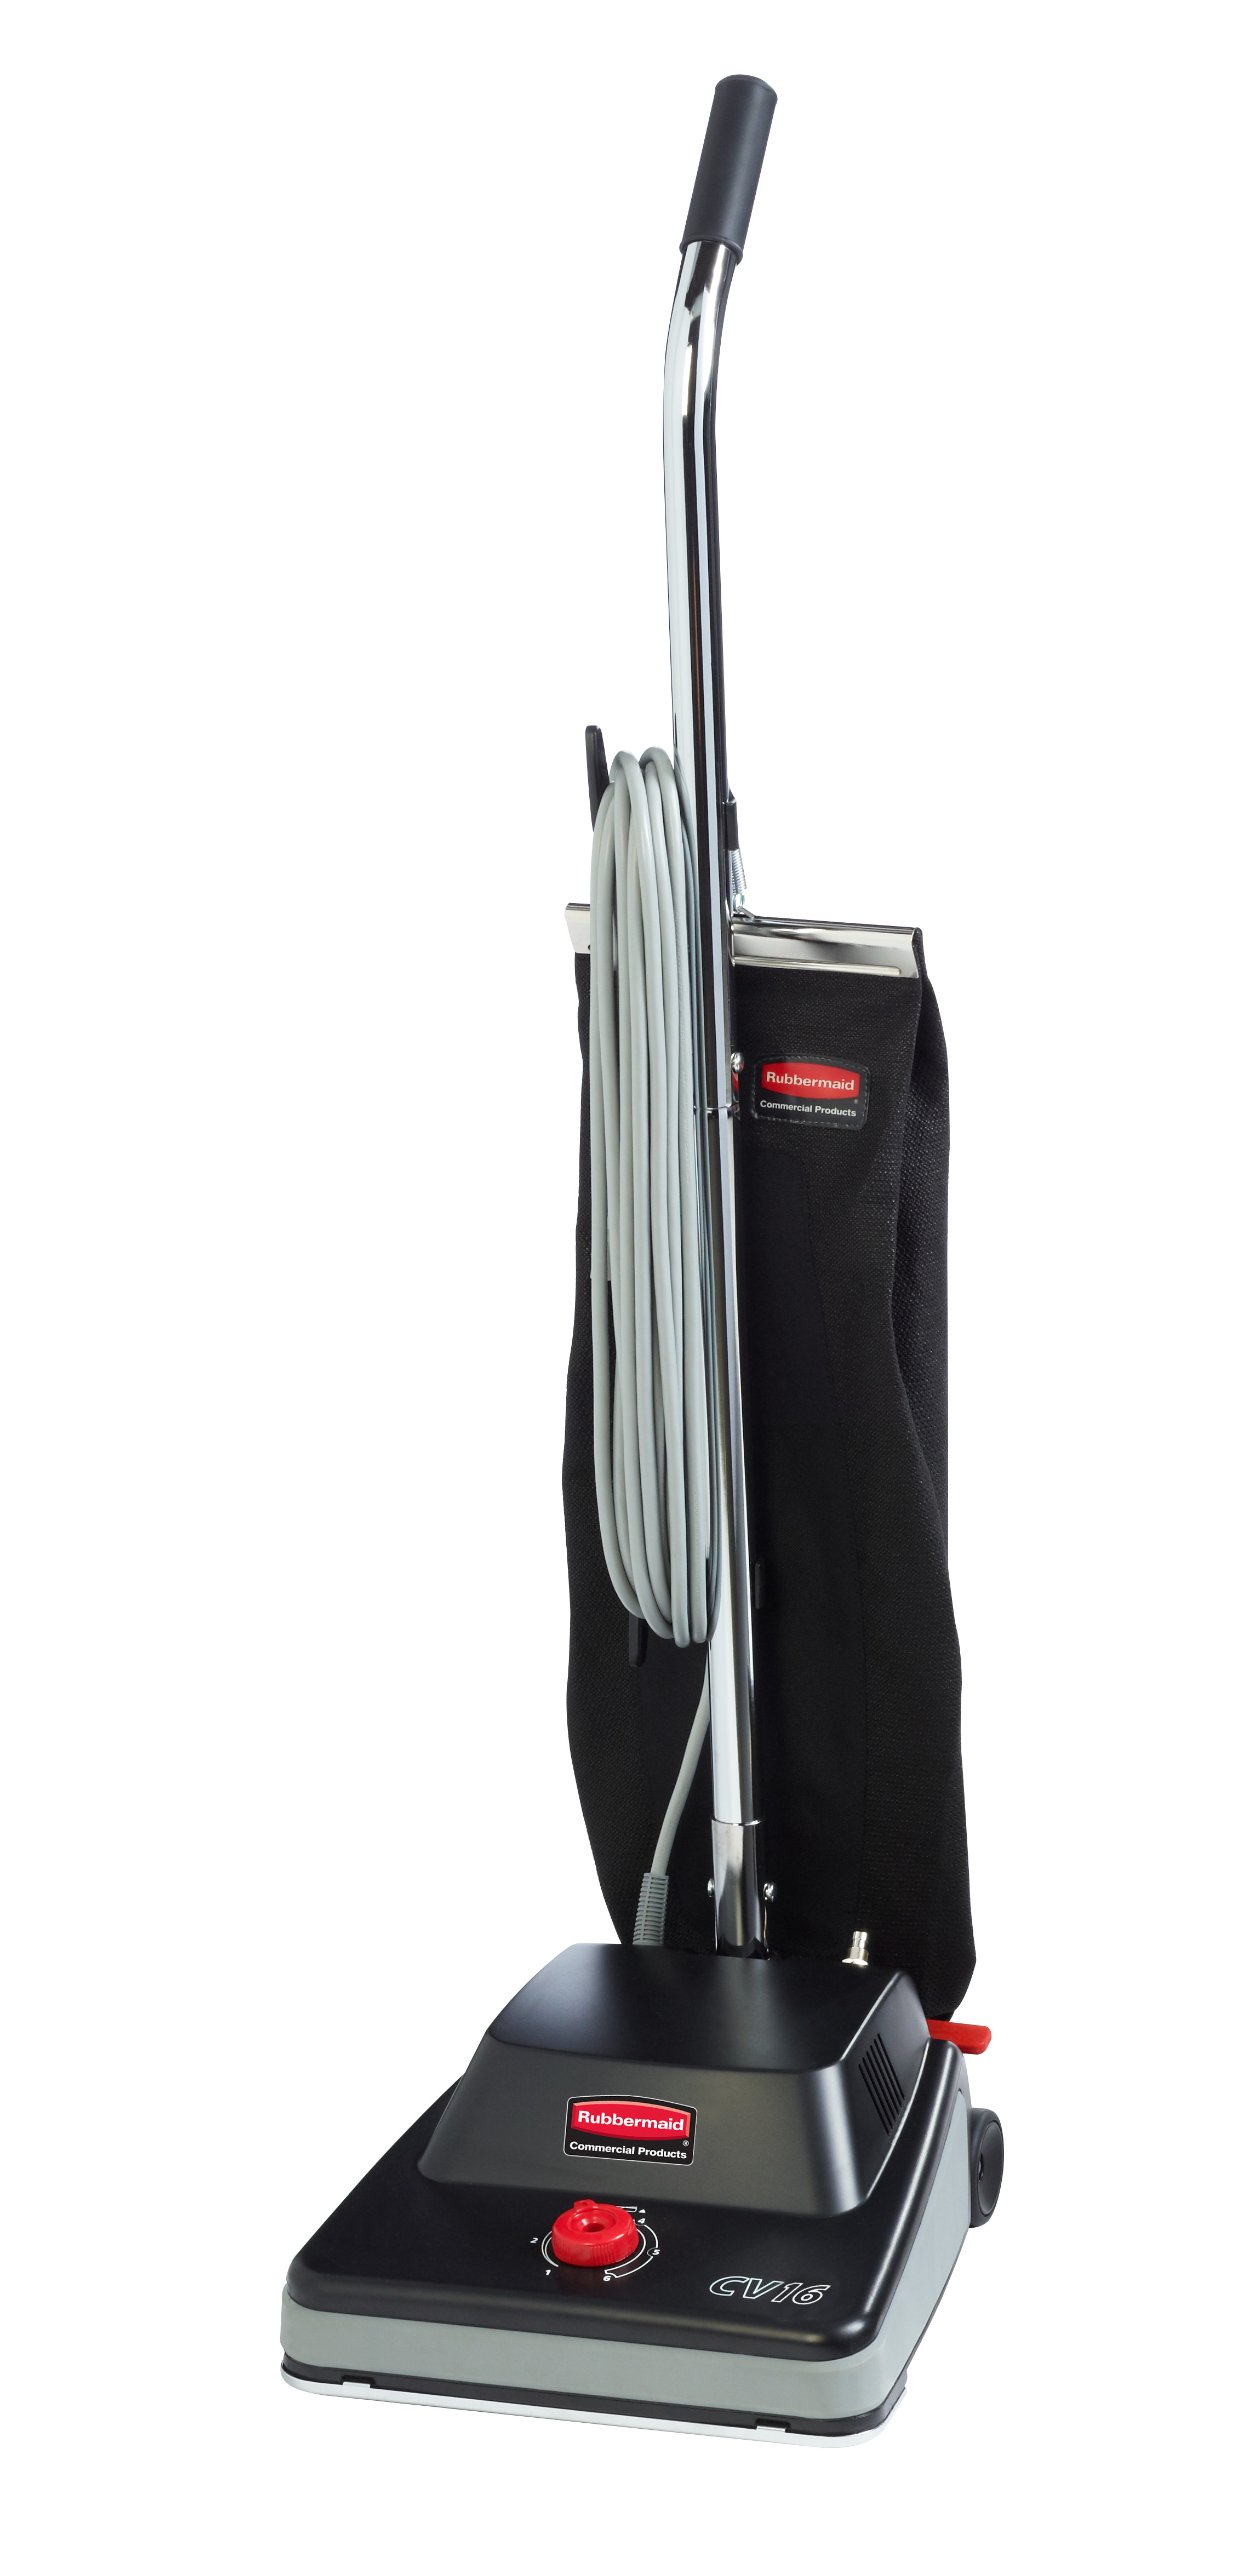 Rubbermaid Commercial 1868437 Executive Series Standard Upright Vacuum Cleaner, 16-inch, Black by Rubbermaid Commercial Products